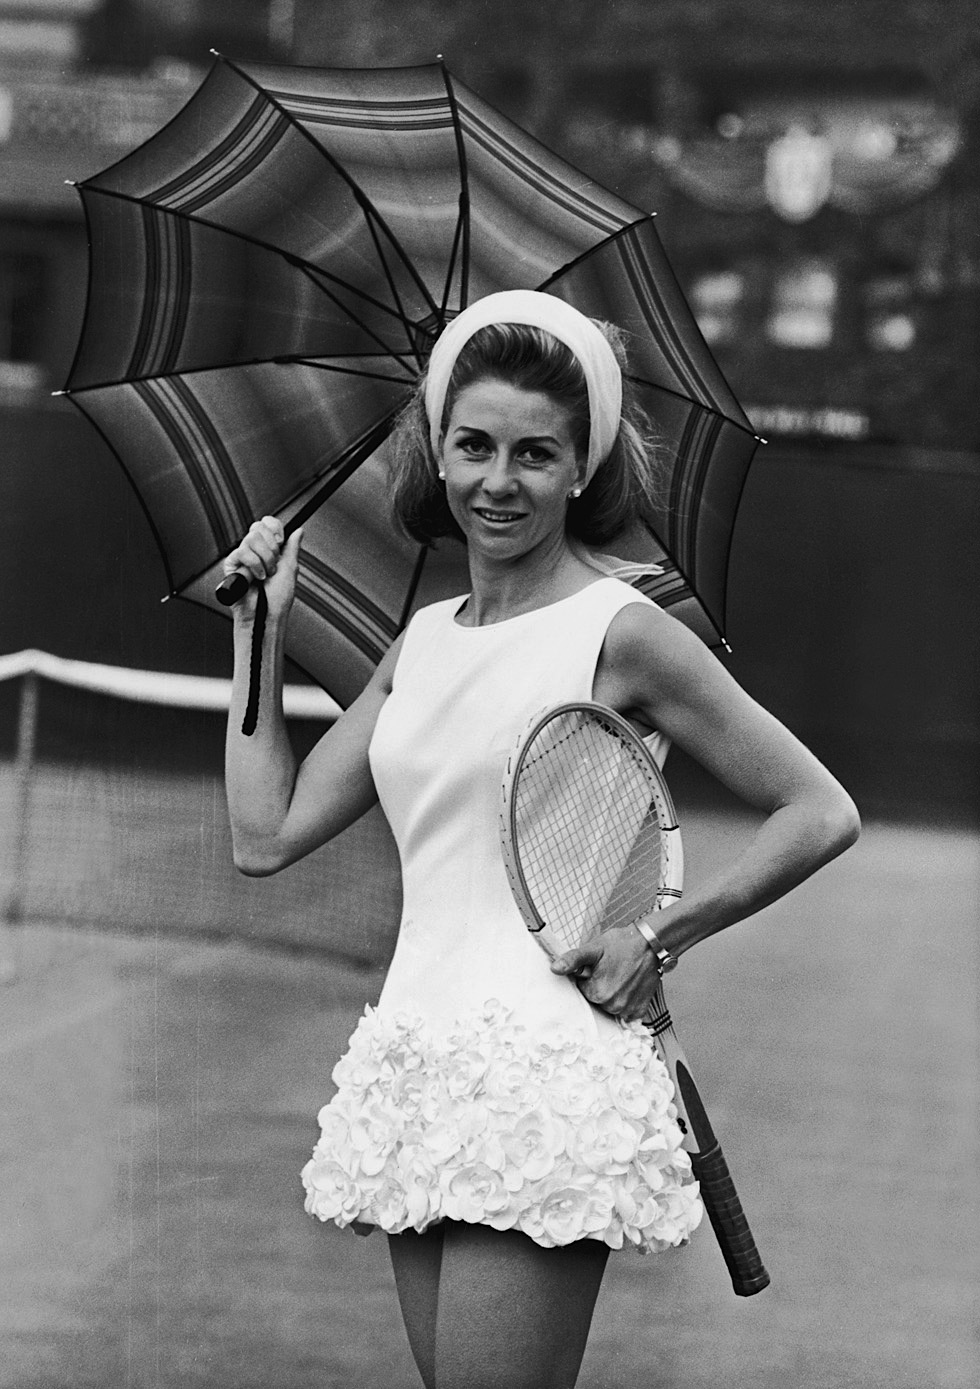 Lea Pericoli - Wimbledon 1965 - (Photo by Keystone/Getty Images)